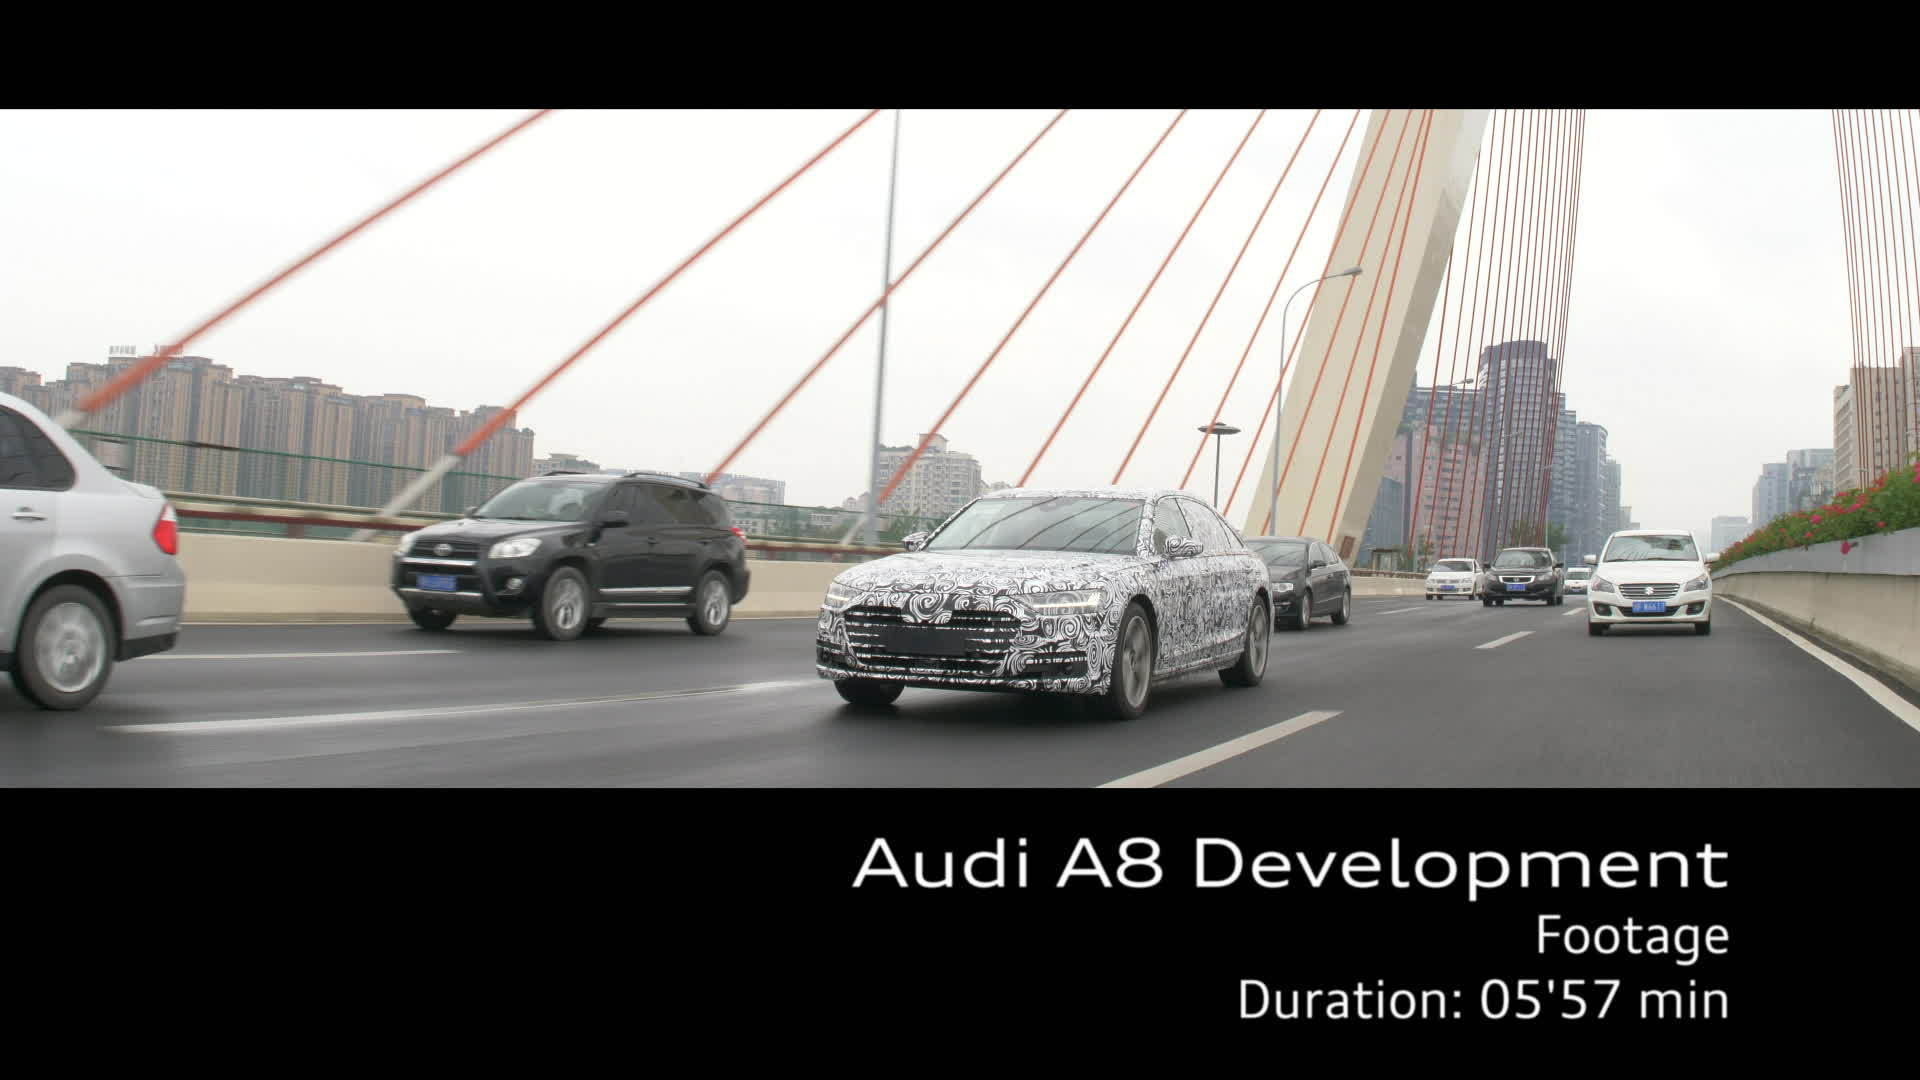 Audi A8 – Footage Development